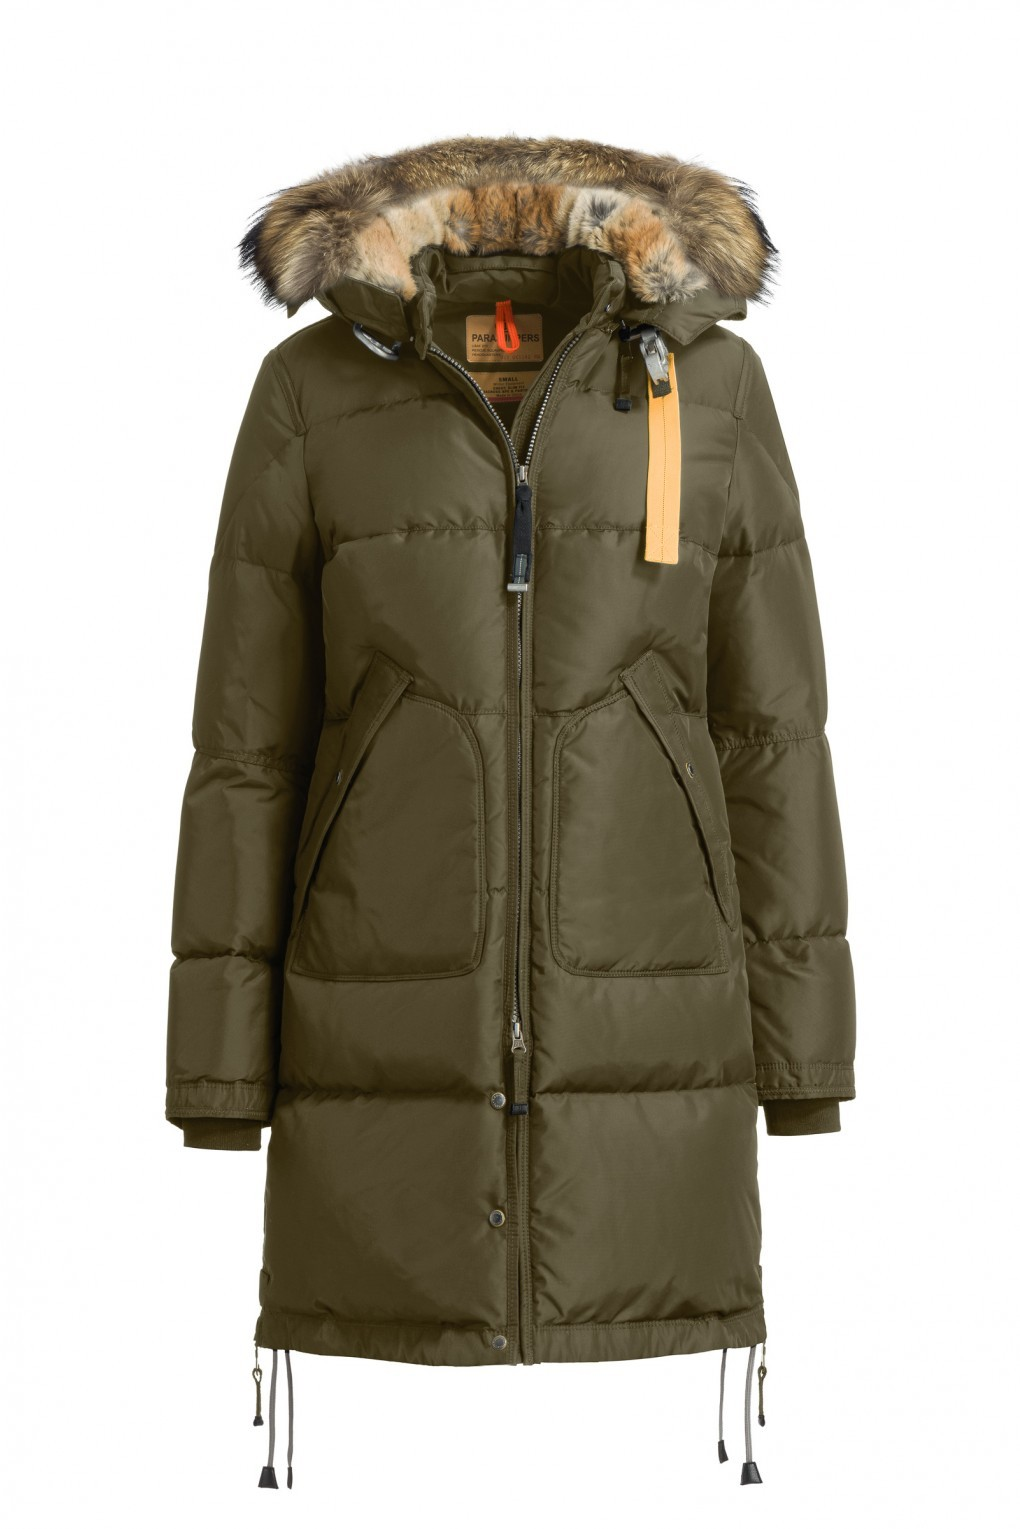 Parajumpers płaszcz/parka long bear